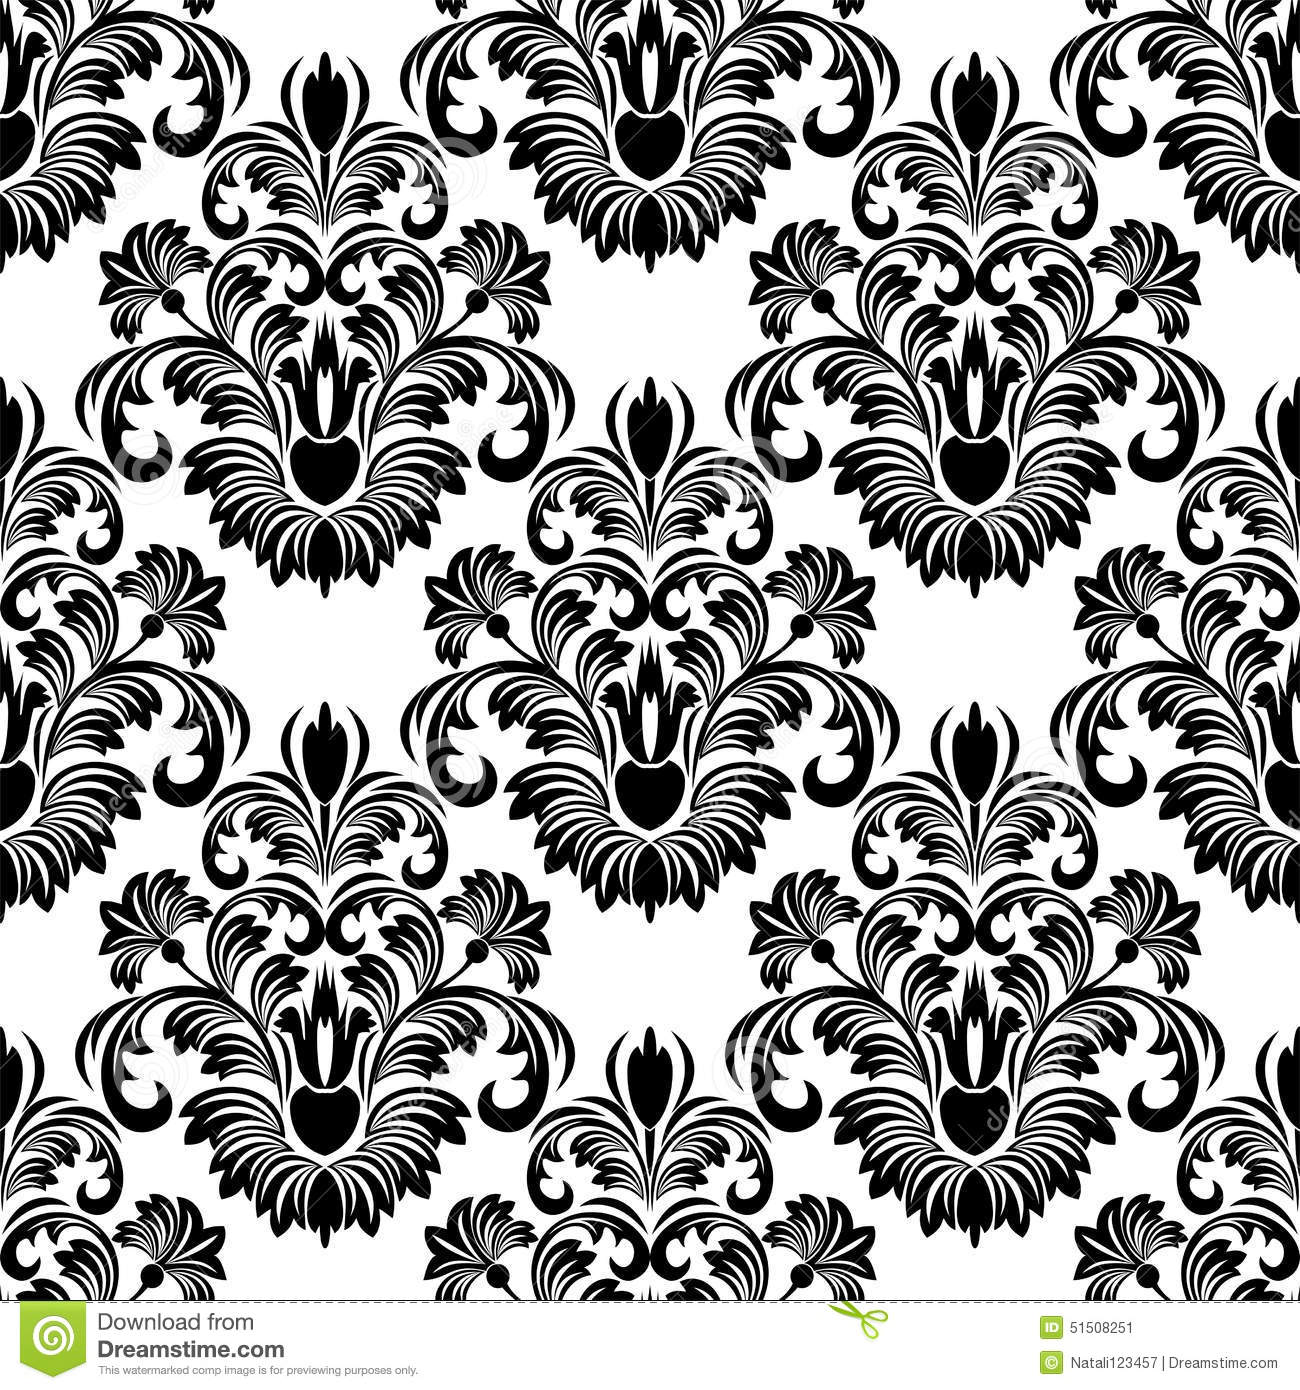 Seamless damask wallpaper for design black on white for Black white damask wallpaper mural